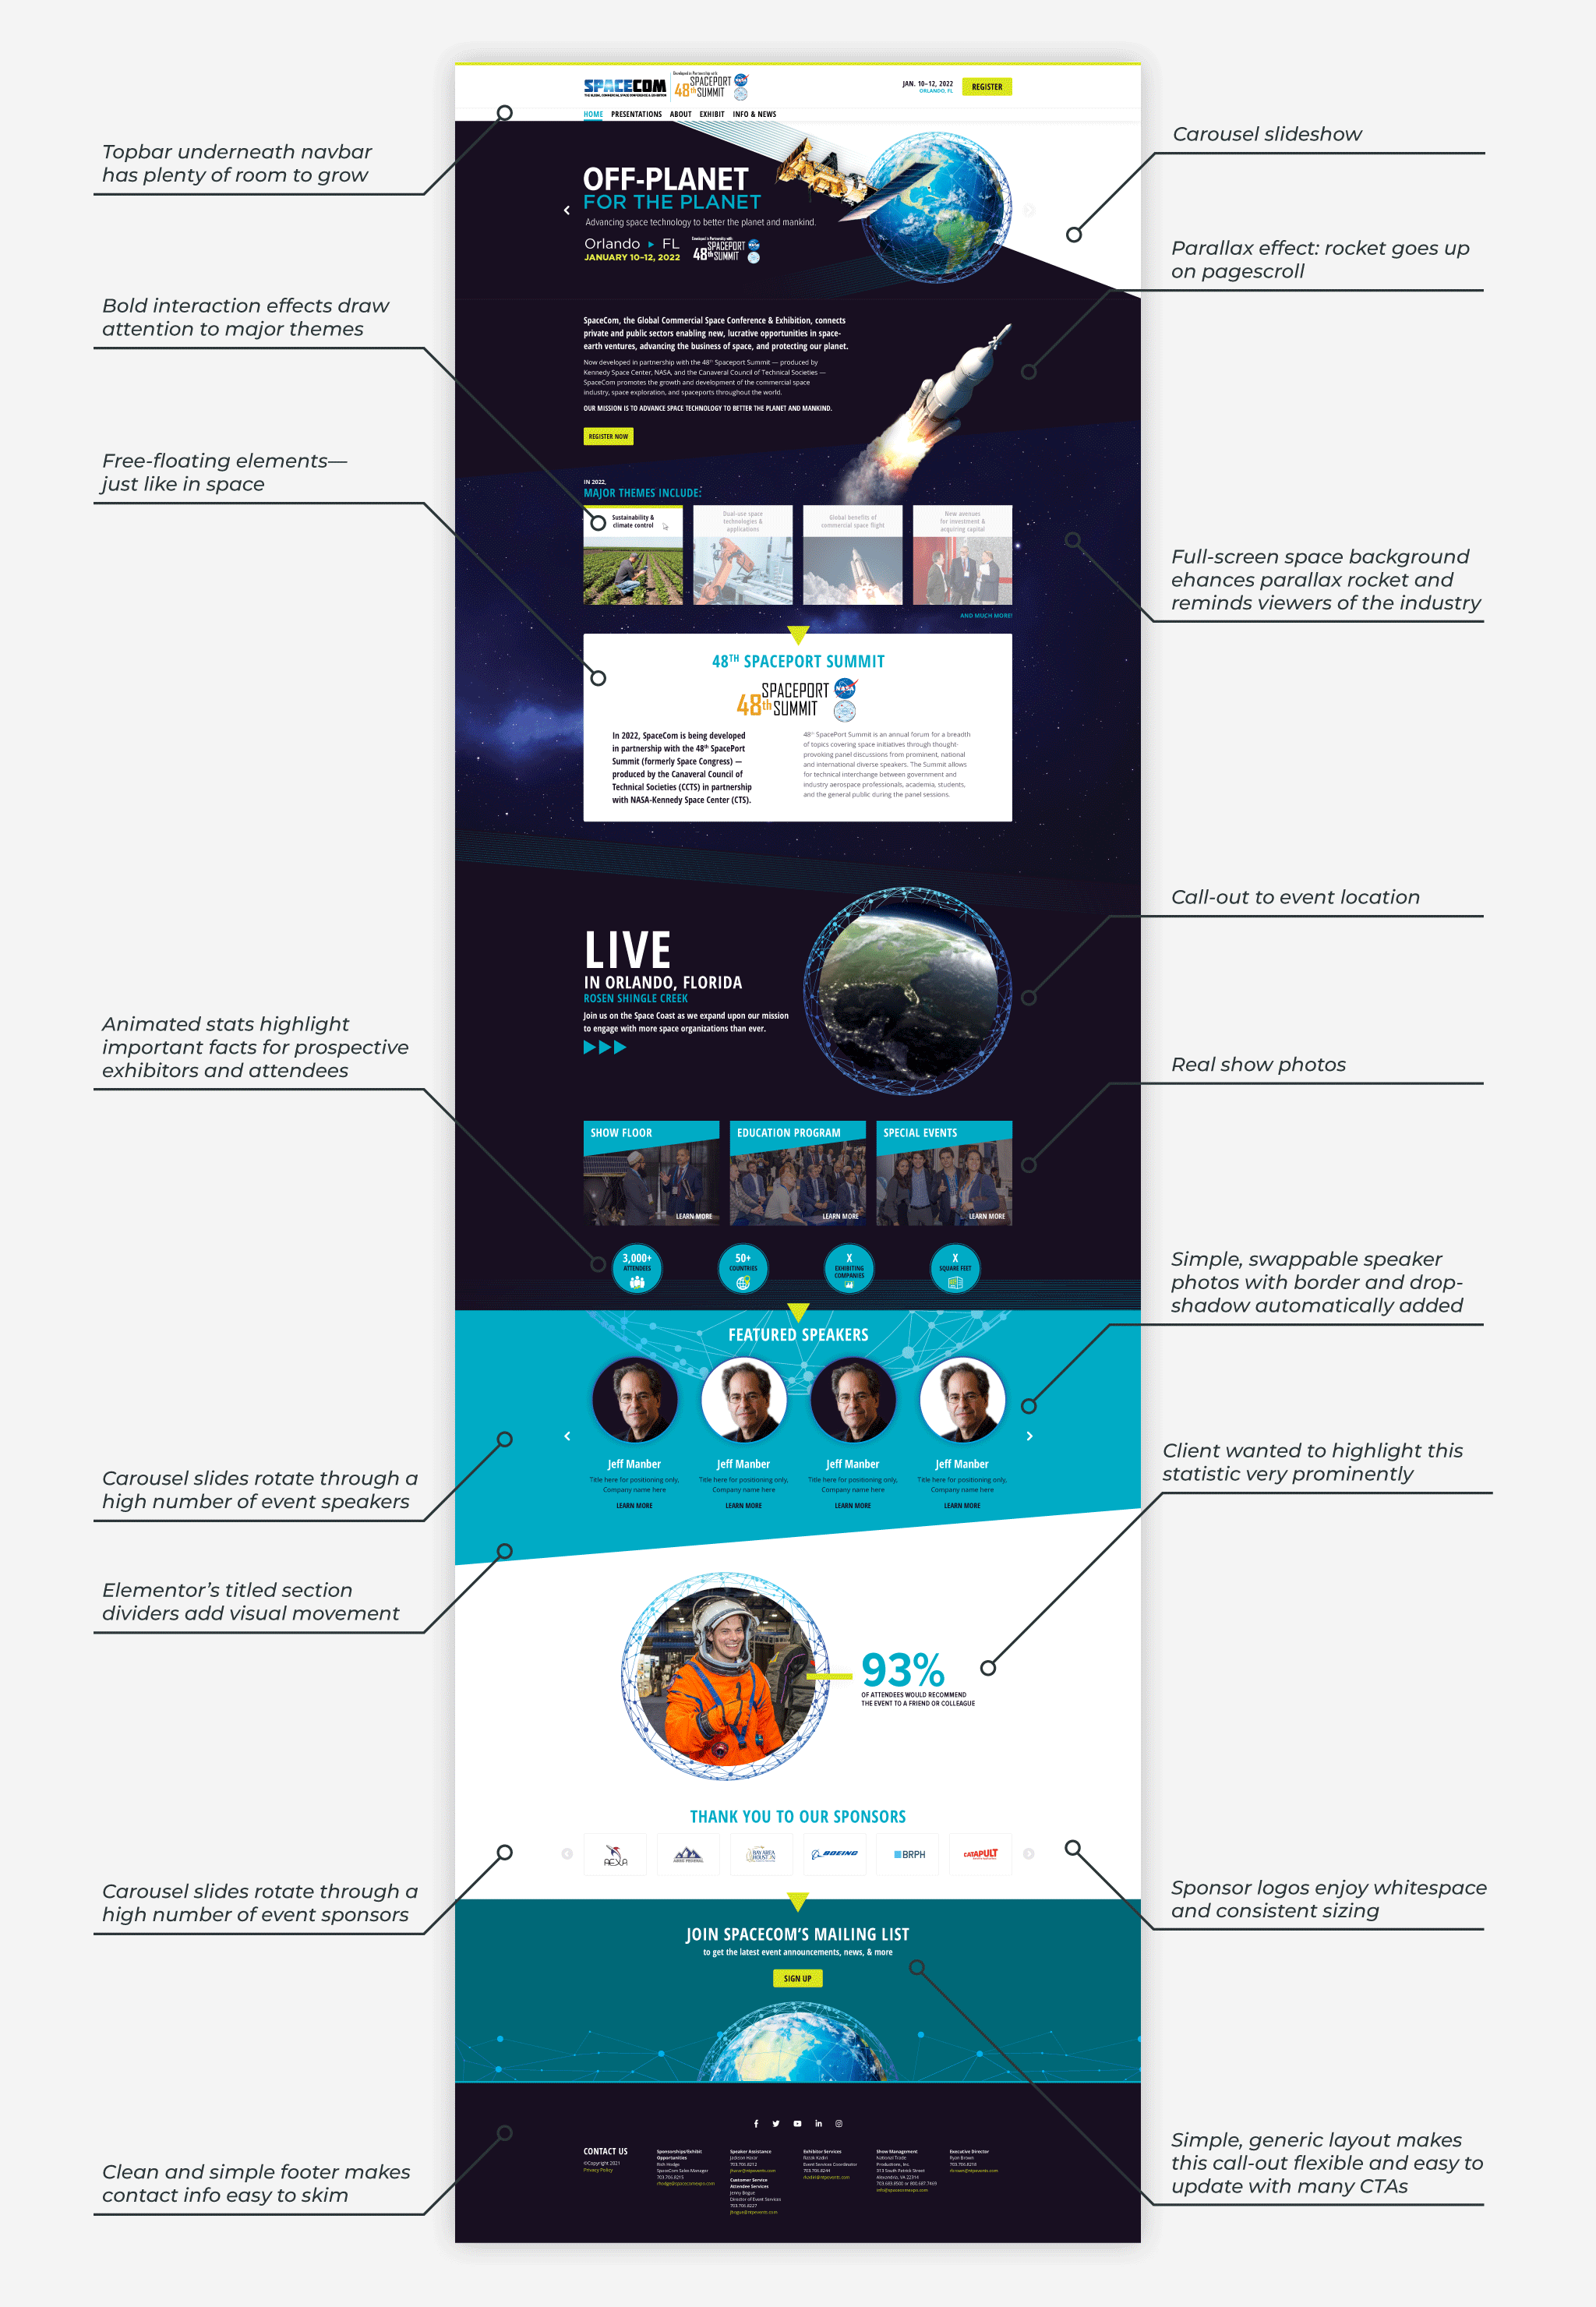 Infographic: the SpaceCom 2022 Conference and Expo Website Design homepage builds a clear visual hierarchy with a simple layout, bold graphics and colors, and eye-catching interactive effects for parallax on scroll, hover, etc.